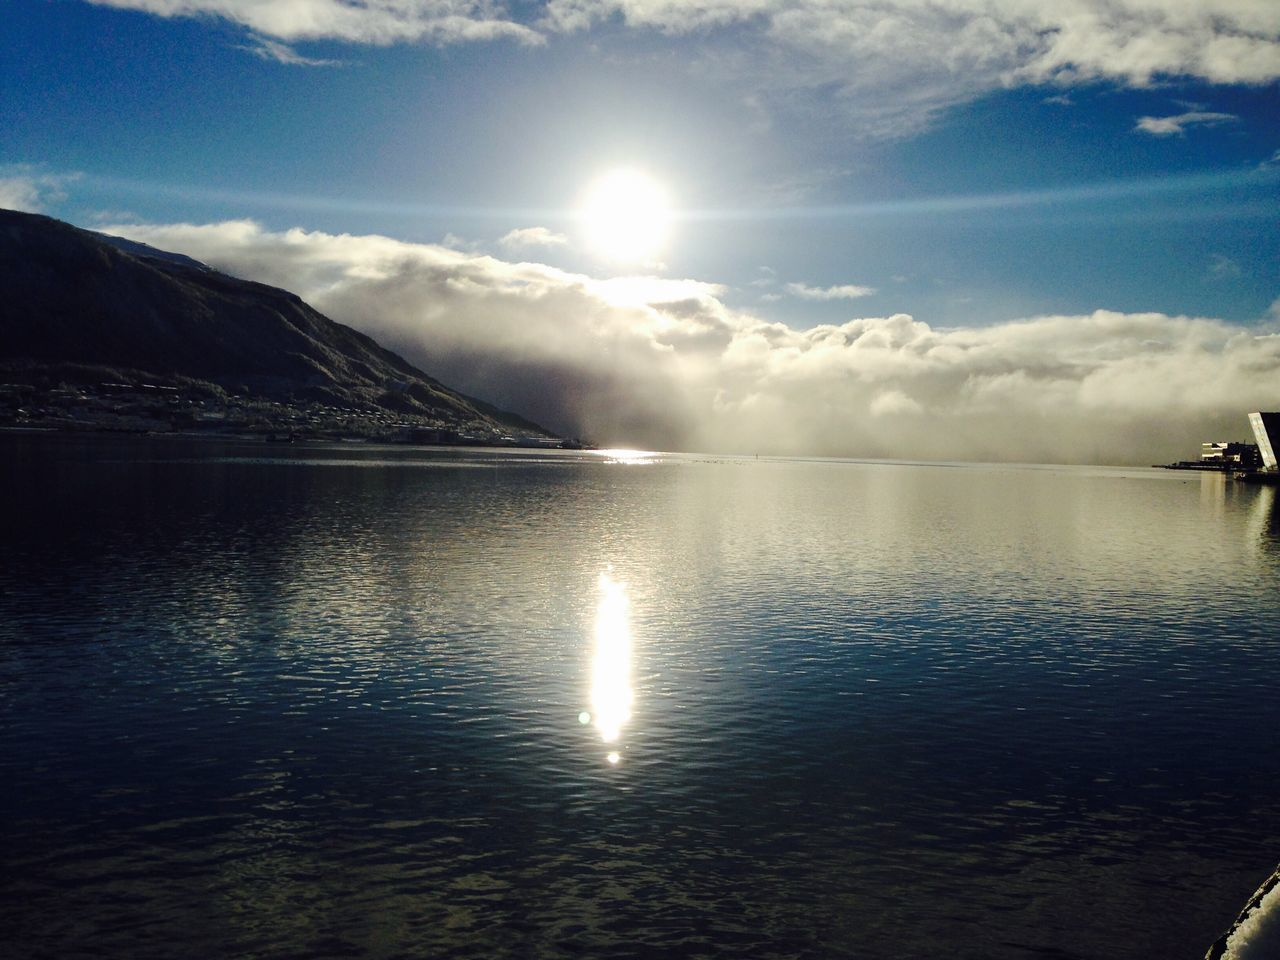 Water Reflection Tranquility Scenics Sky Beauty In Nature Tranquil Scene Nature Waterfront Outdoors Lake No People Day Cloud - Sky Mountain Norway Nordkapp Tromsø EyeEmNewHere Break The Mold